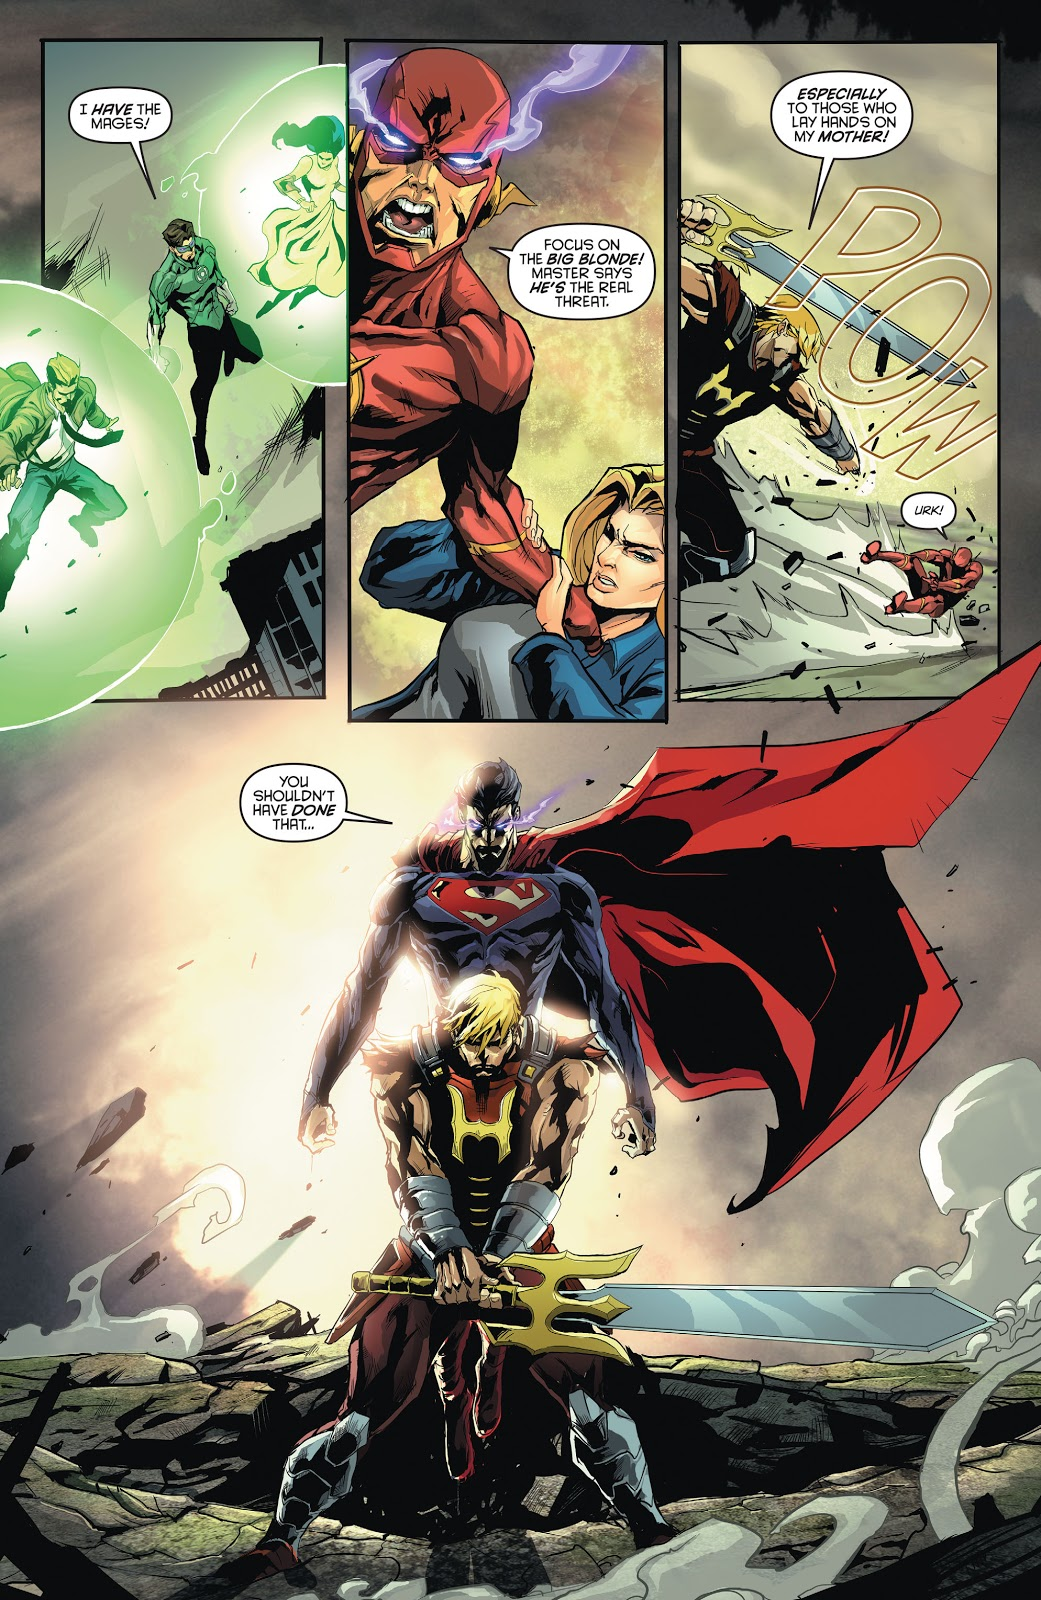 In 'DC Universe vs The Masters Of The Universe' (2013) #2, is the second encounter of a mind-controlled Superman and He-Man.